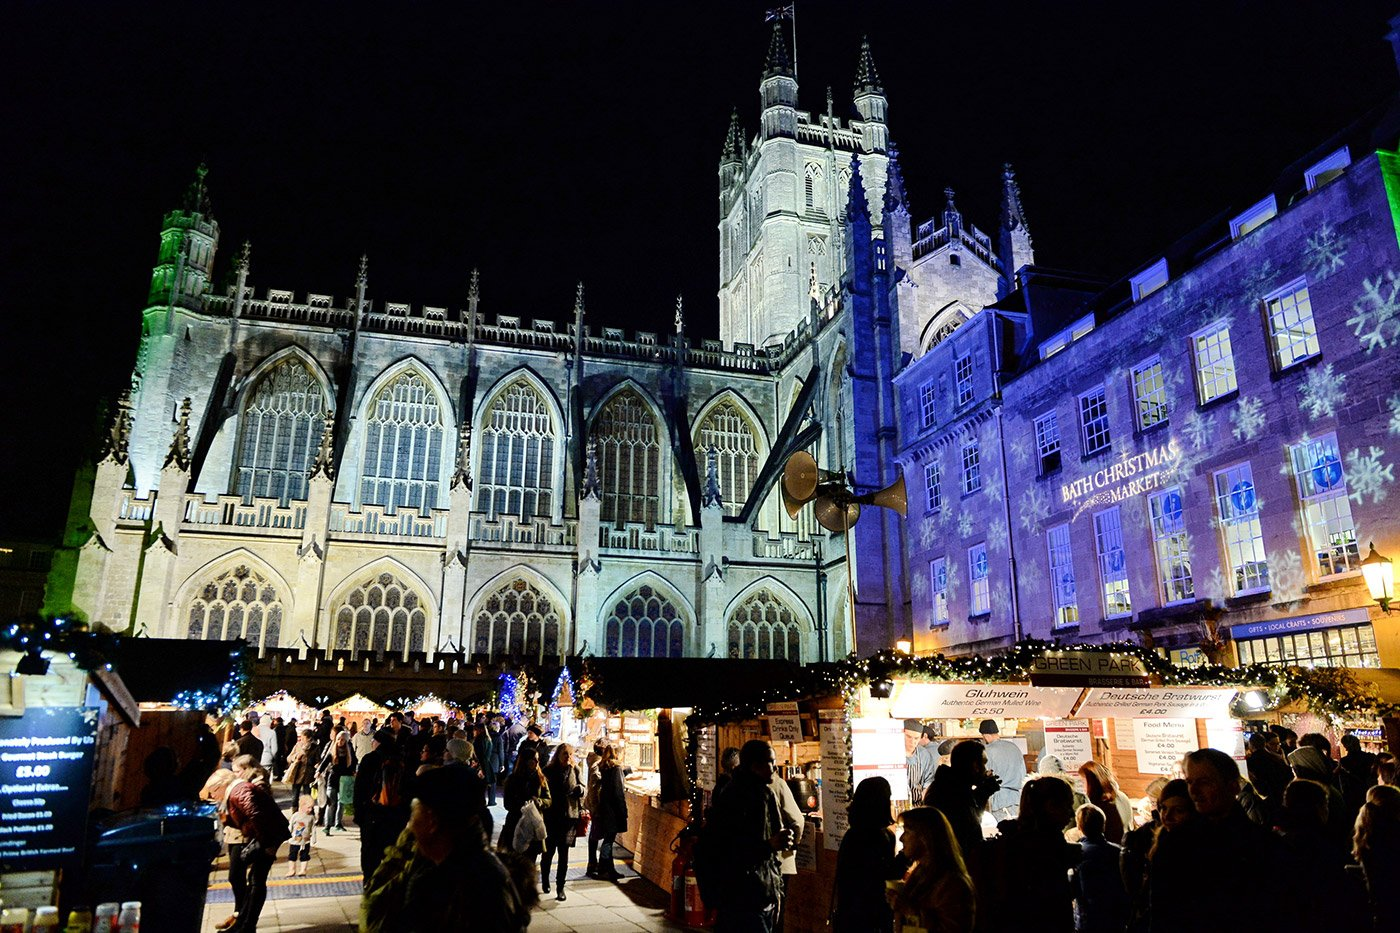 Using Storage During the Christmas Period in Bath